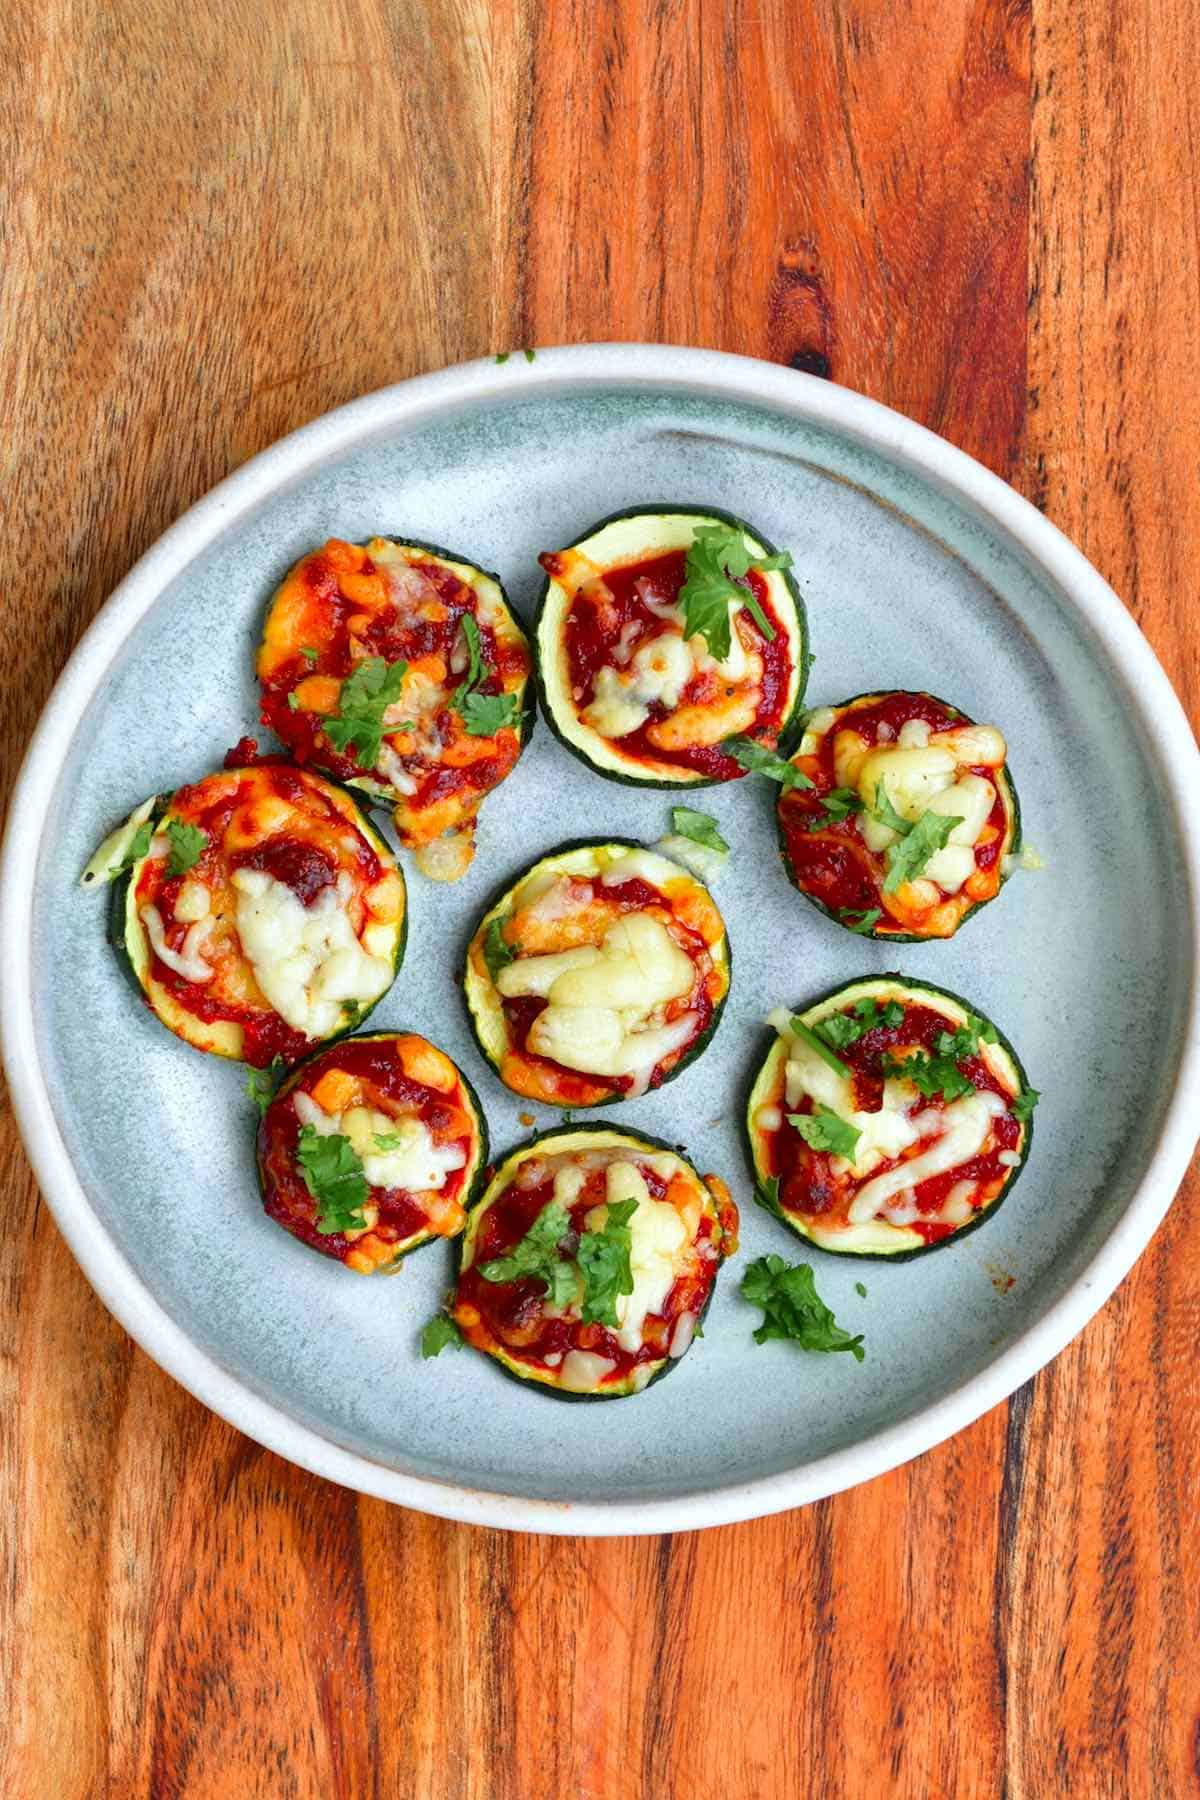 Eight zucchini pizza bites in a blue plate